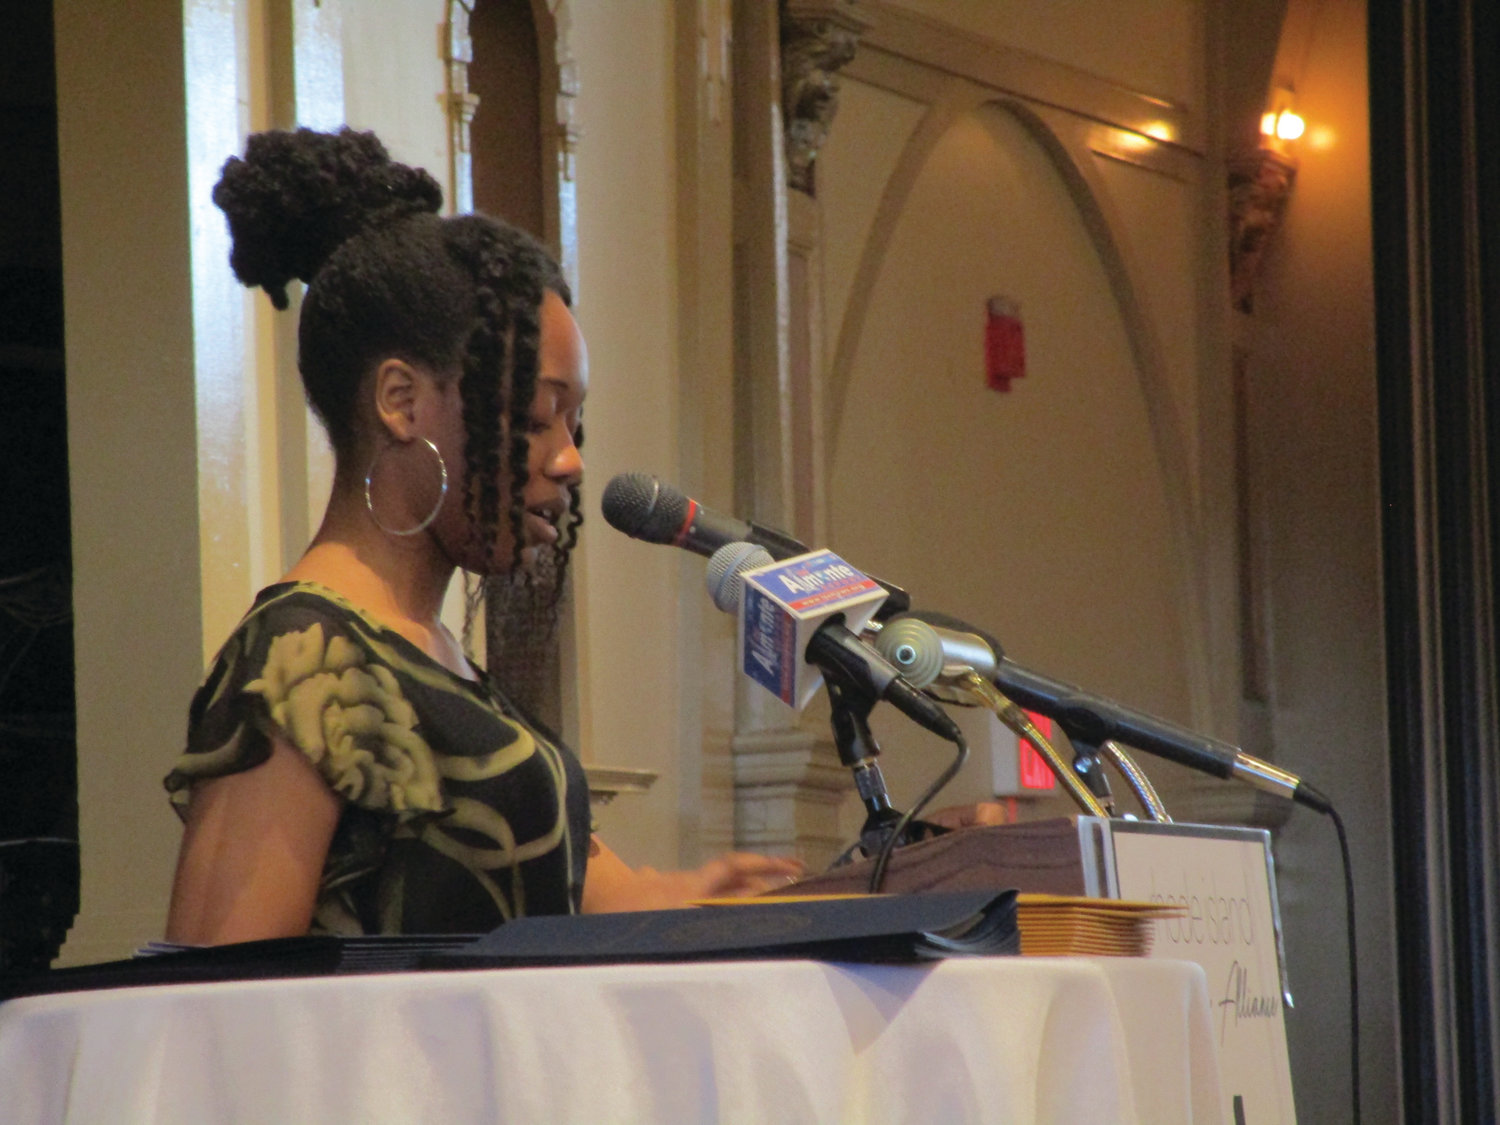 FUTURE LEADER: Scholarship recipient Blessed Sherrif shares a portion of her essay during Monday's breakfast.